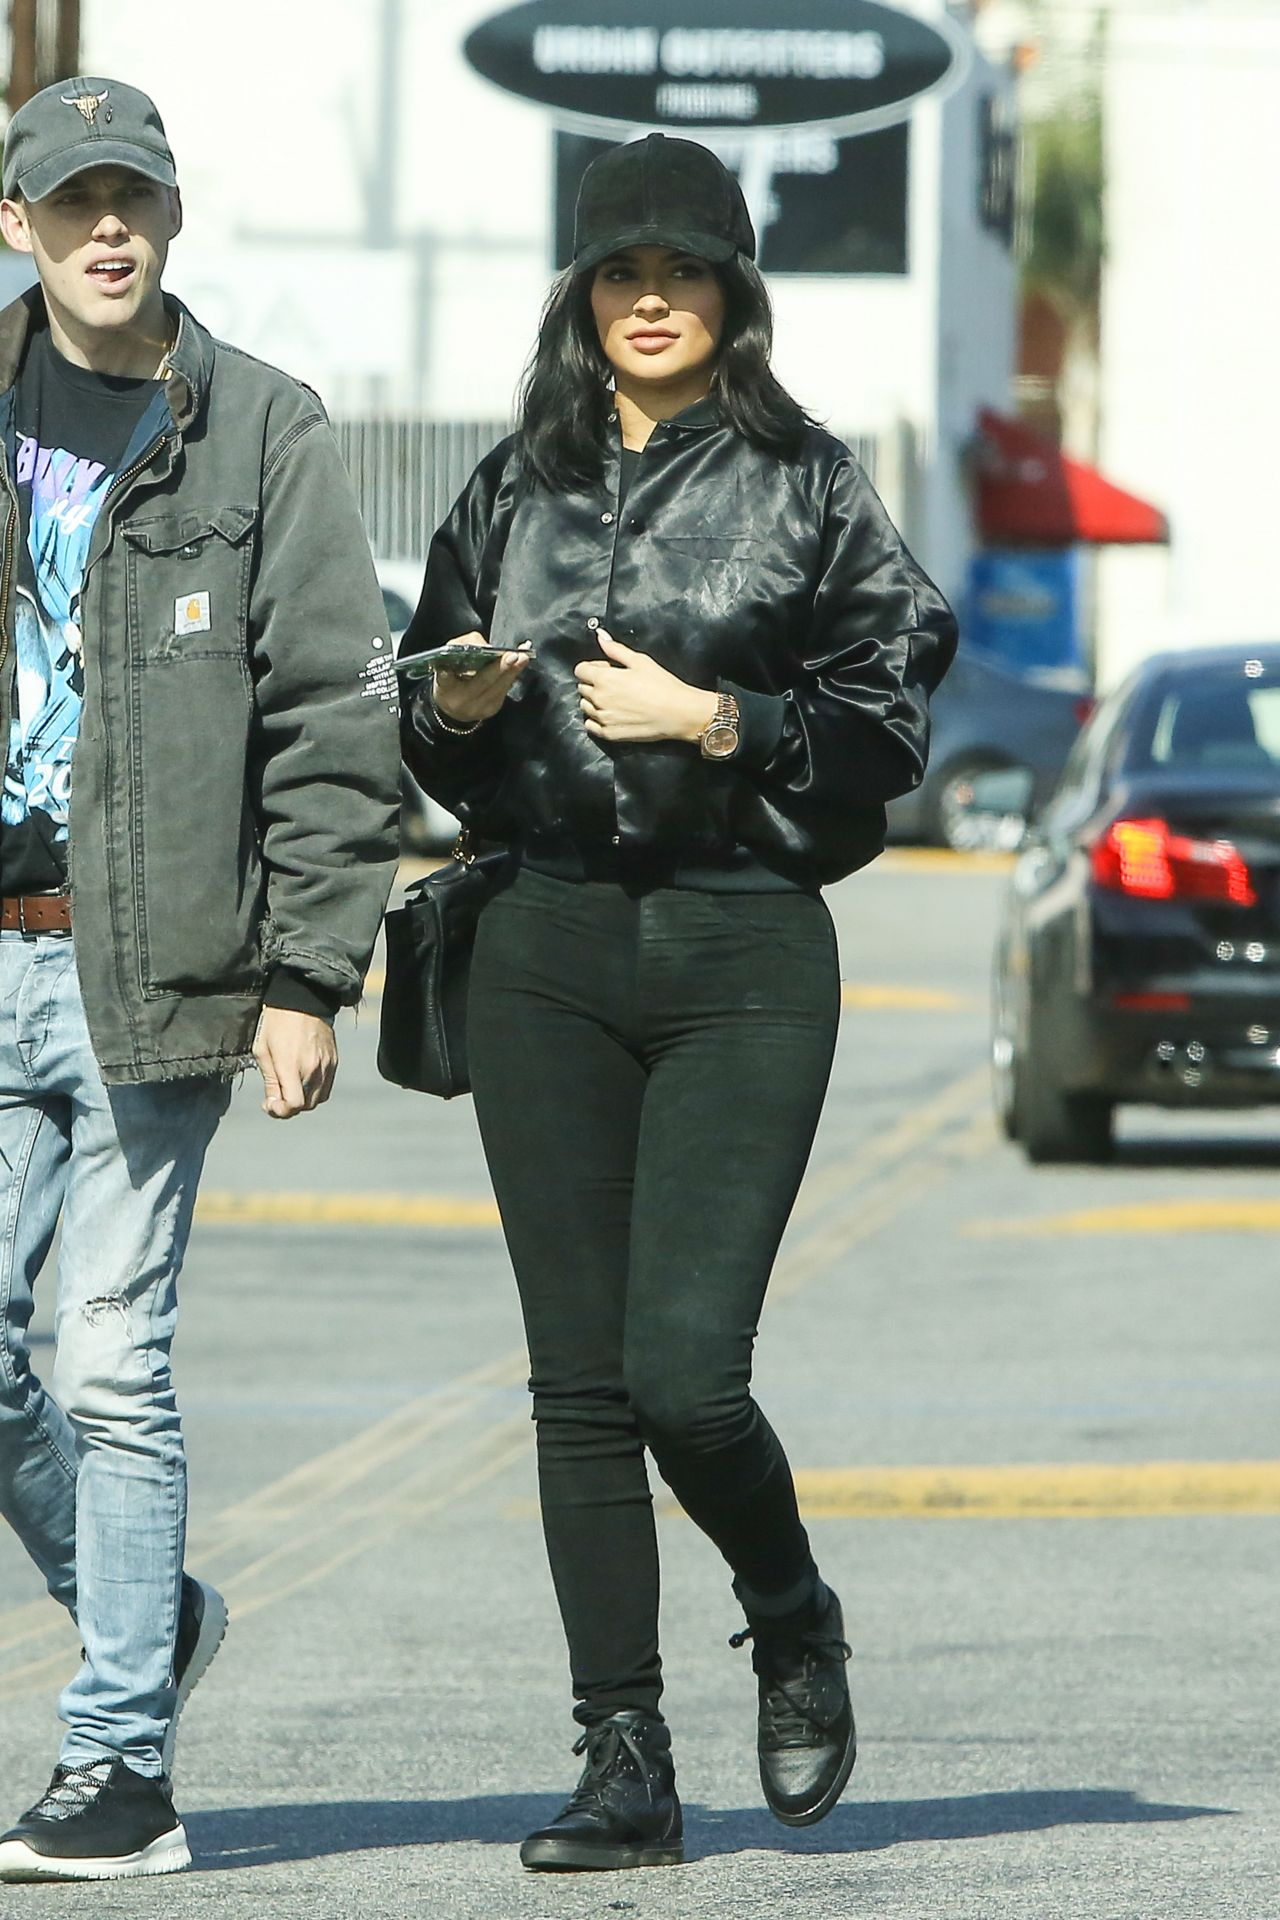 Kylie Jenner Urban Outfit Out In Sherman Oaks 6 12 2016